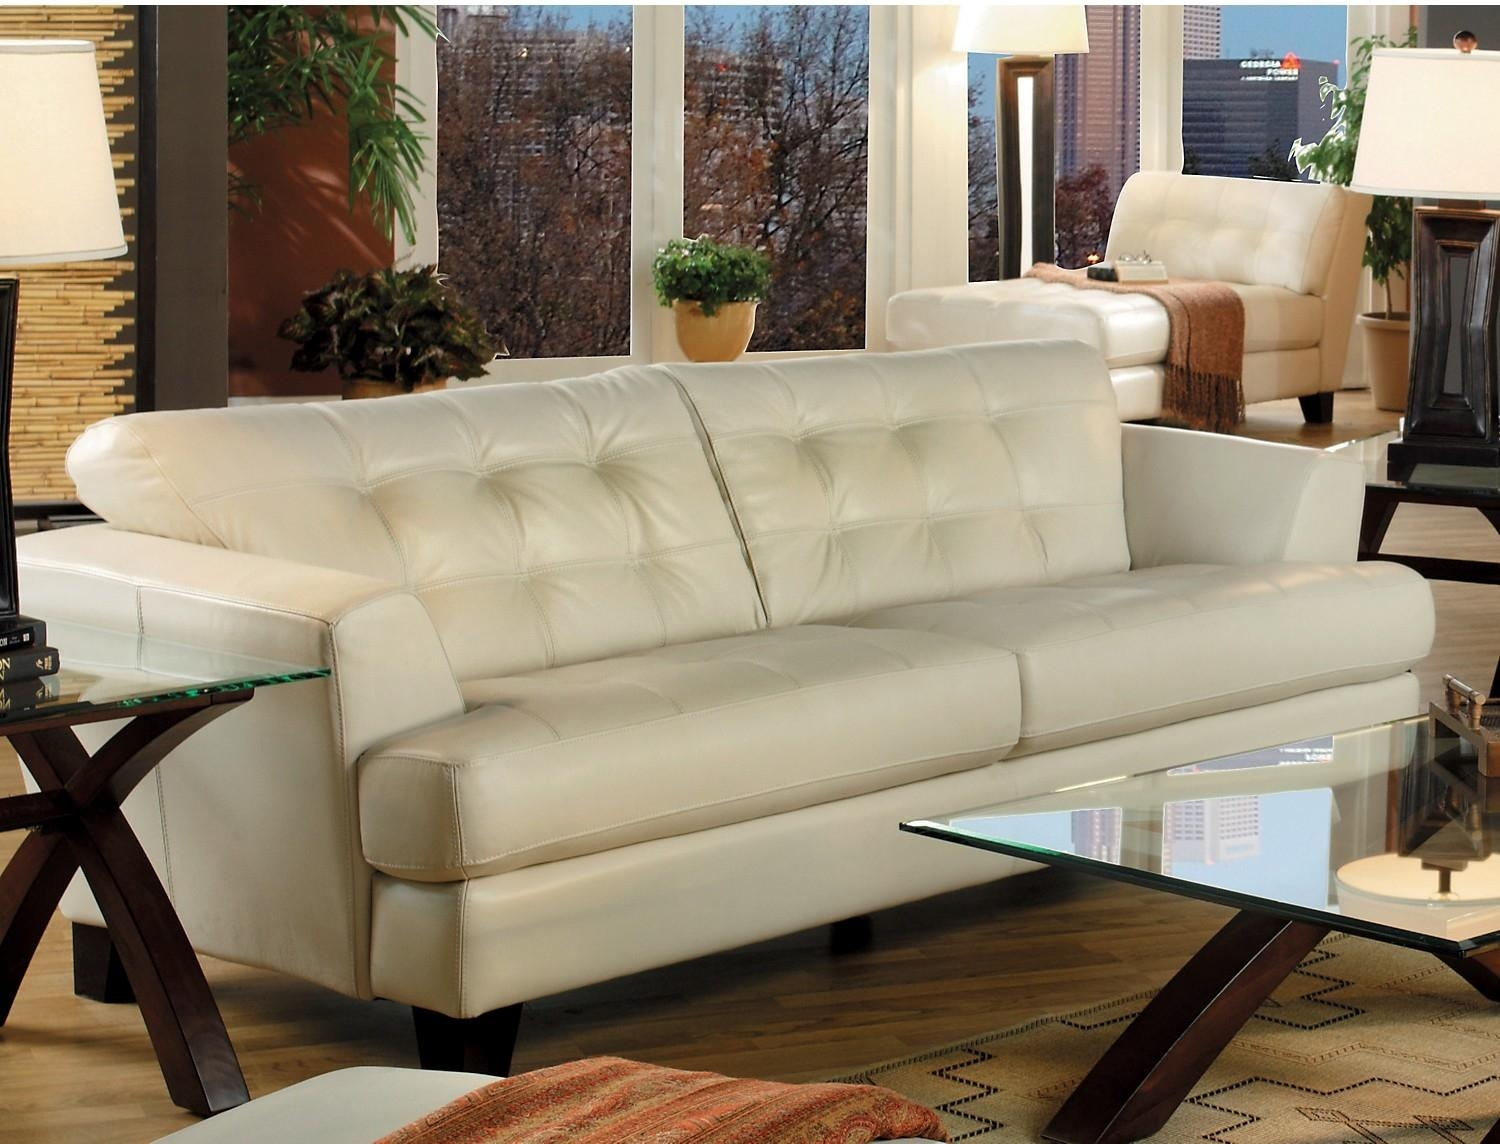 Furniture: Cindy Crawford Sectional Sofa For Elegant Living Room Inside Cindy Crawford Microfiber Sofas (View 6 of 20)